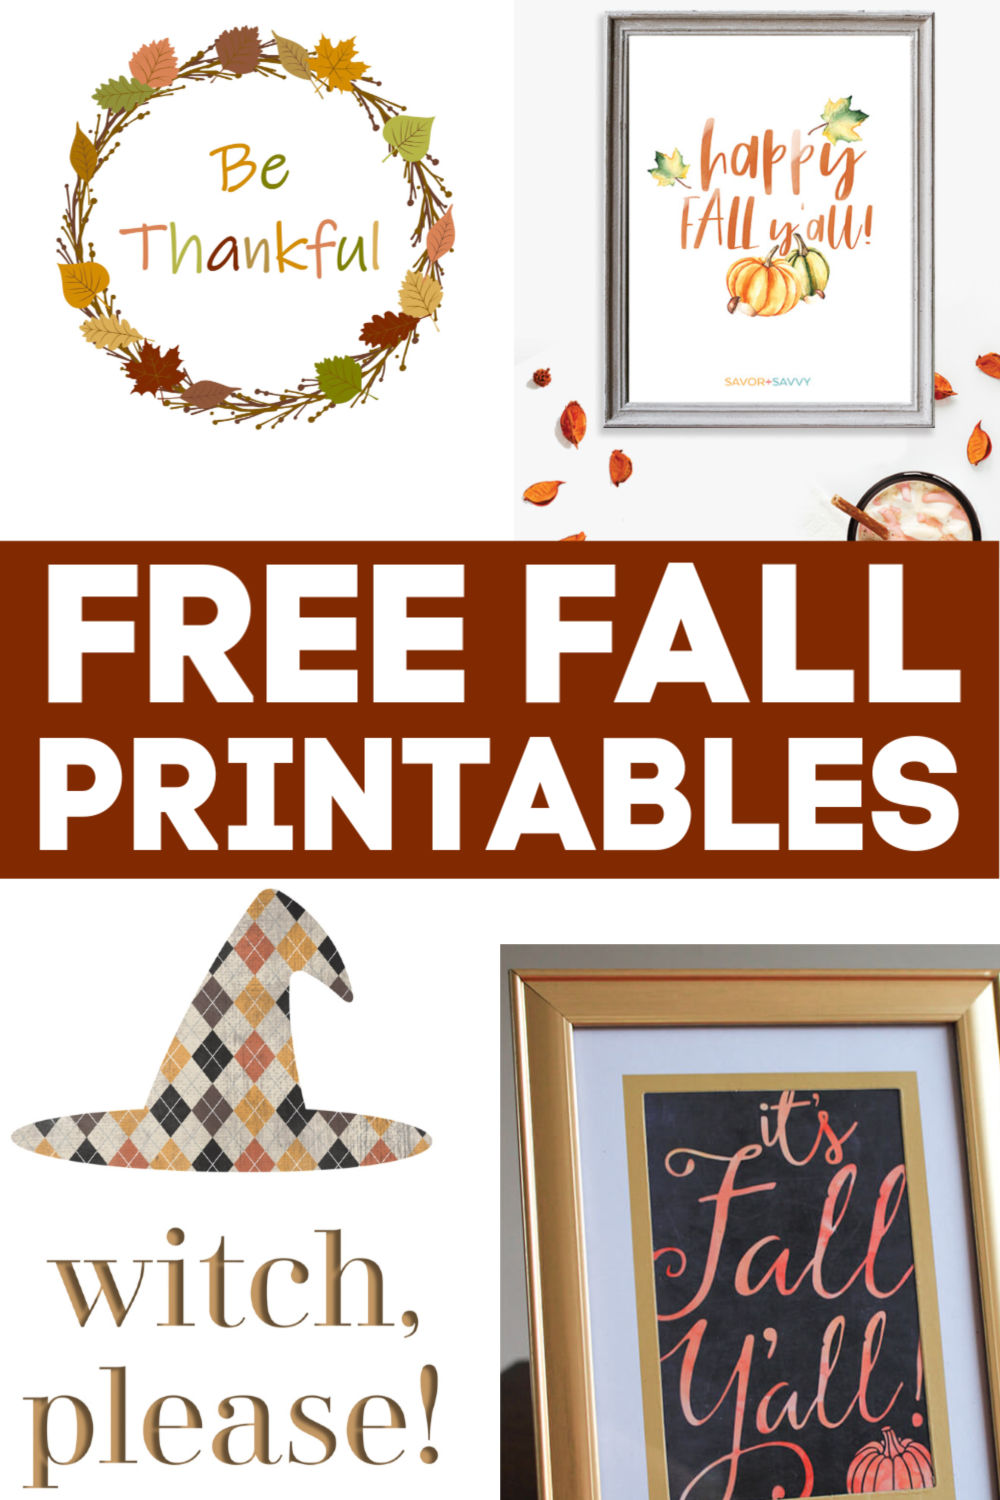 Free Fall Printables are a great way to decorate your home for the autumn season. These adorable fall colors are perfect for the autumn! #printables #fallprintable #autumn